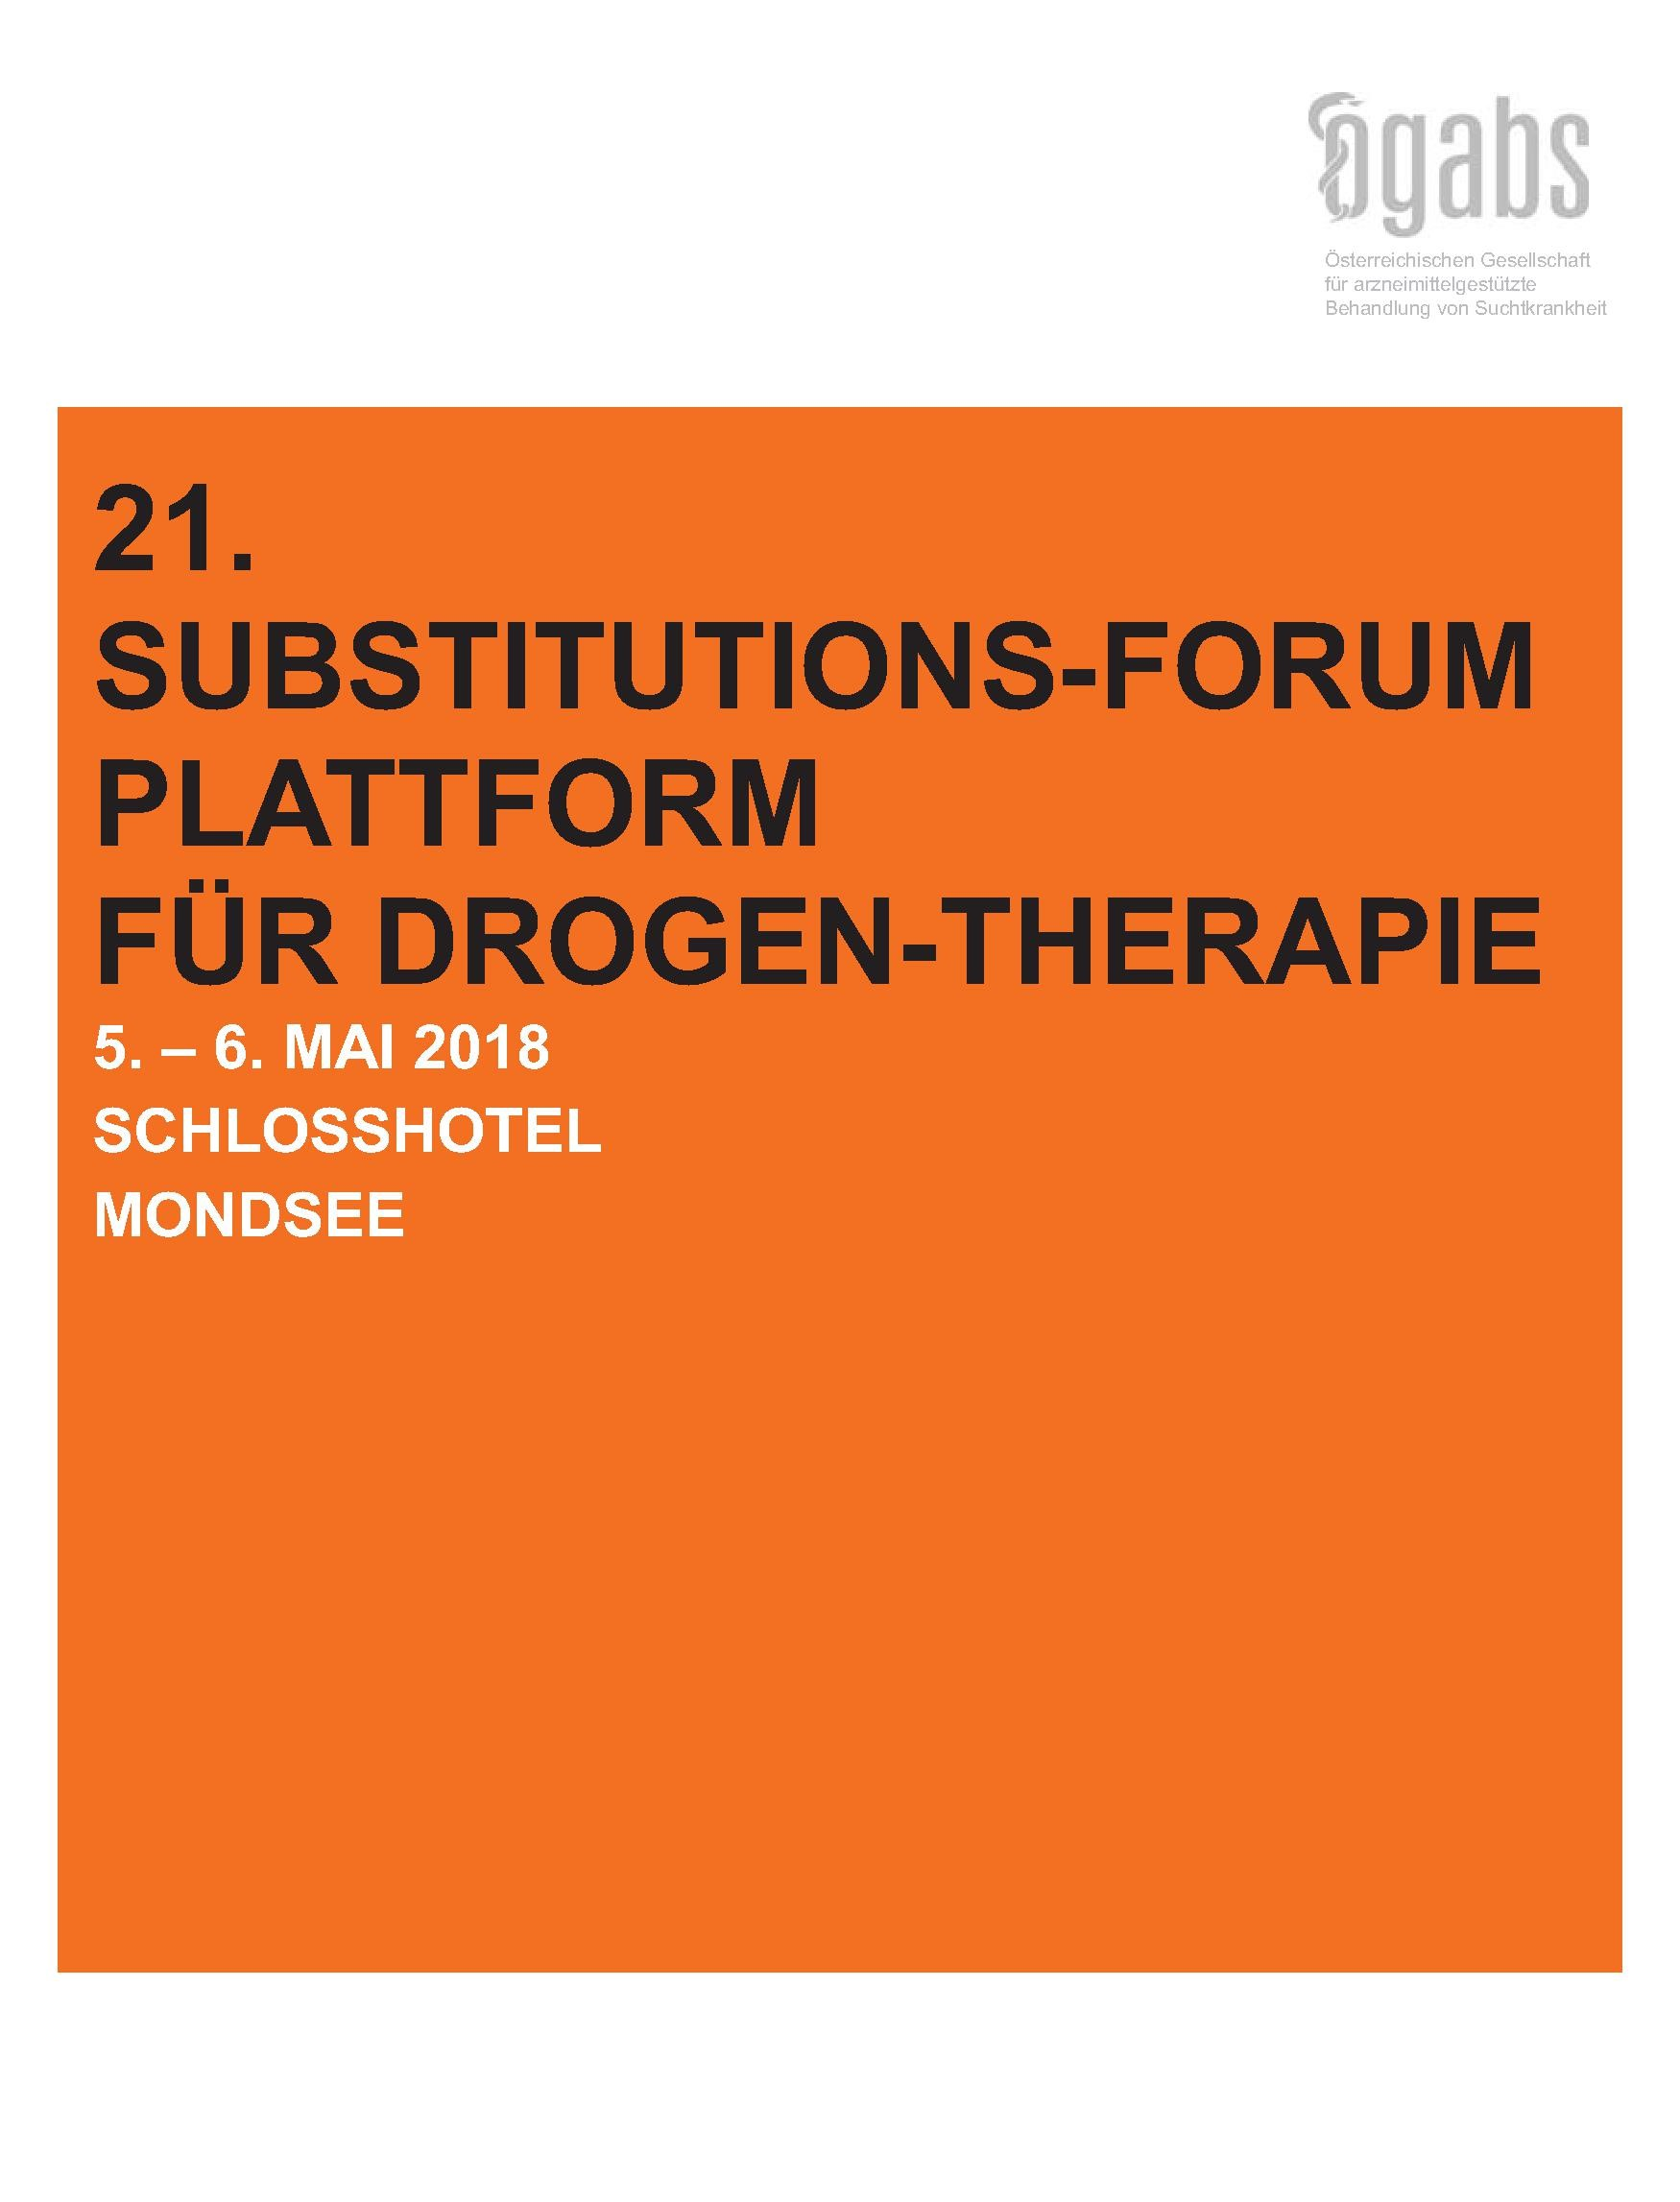 21. Substitutions-Forum